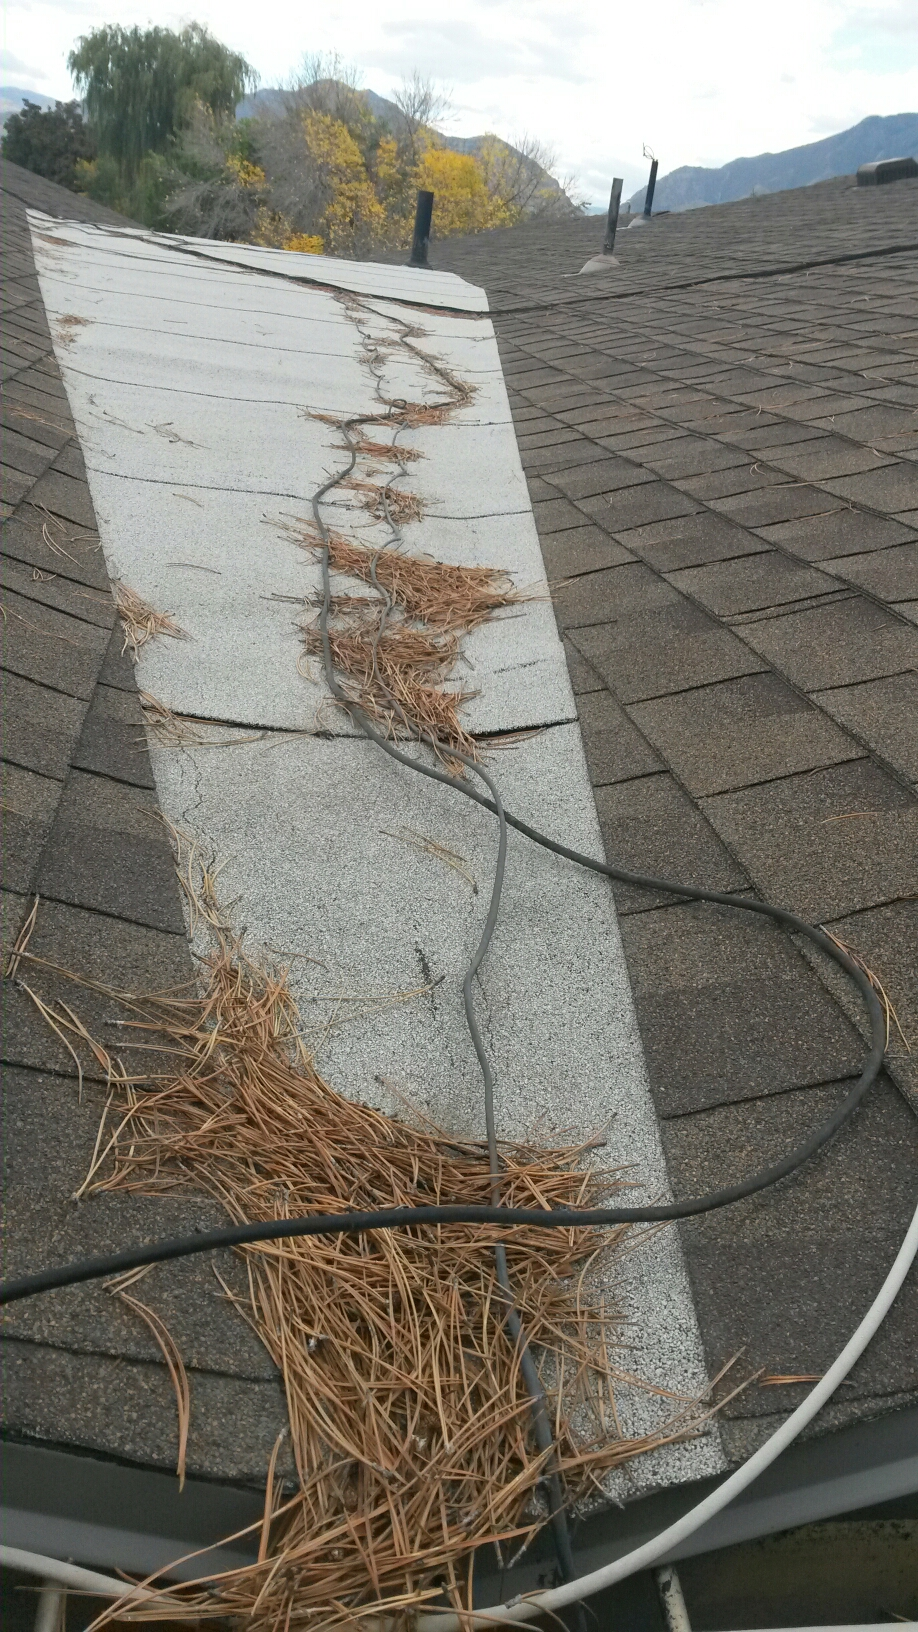 Draper, UT - Mold inspection in Sandy Utah. The picture is not the mold that we found, but of the roof which is one of the contributing factors. Ground water has been coming in the basement through the foundation. The ground near the home is saturated because of a negative slope towards the house and roof and rain gutter issues. A large section of the roof slopes toward a small rain gutter that is clogged from pi e needles and debris. It needs to be cleaned and monitored on a regular basis.